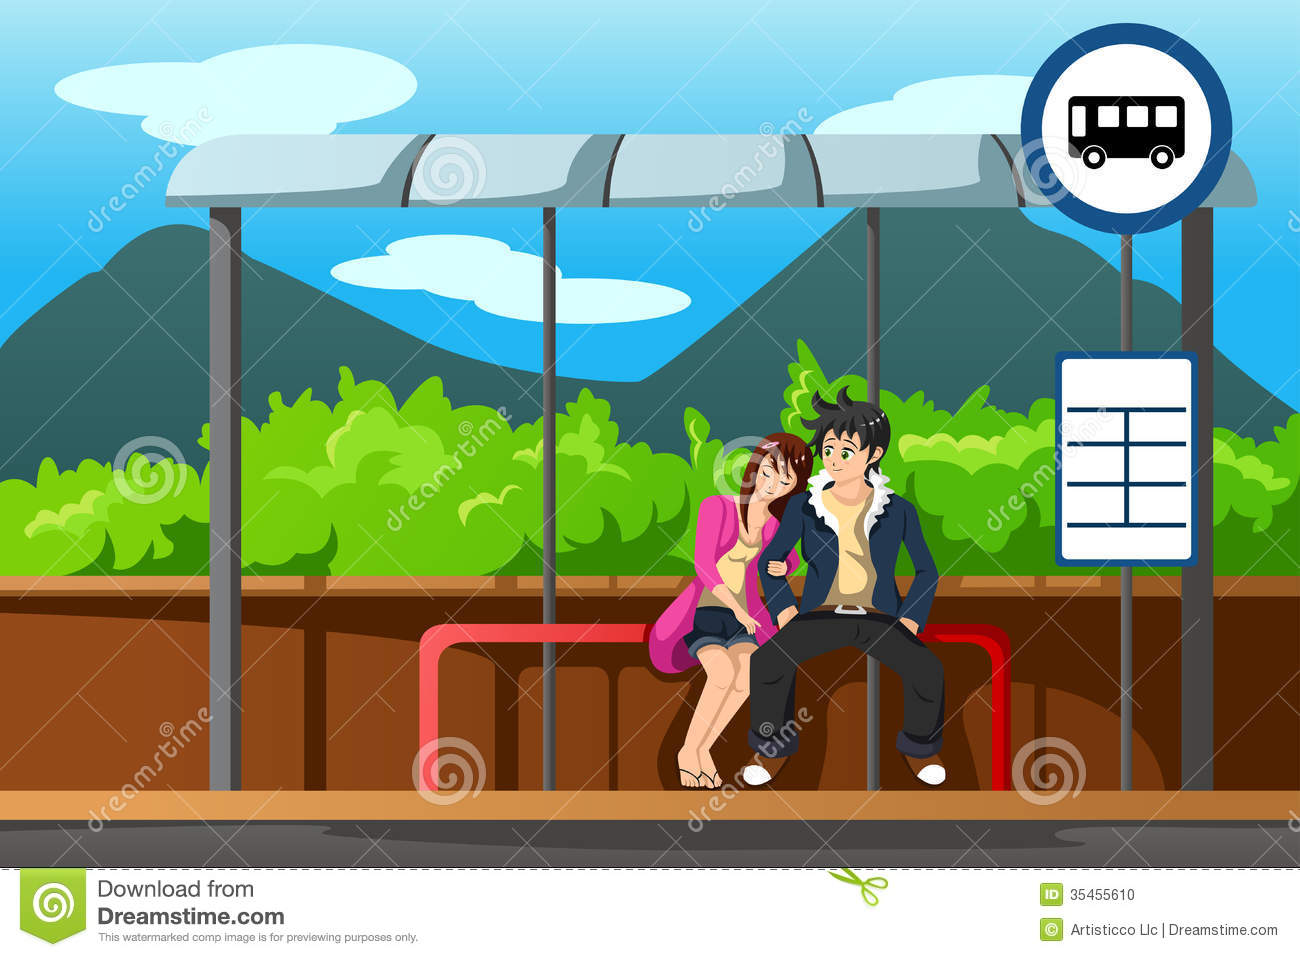 Bus Stop Clipart free